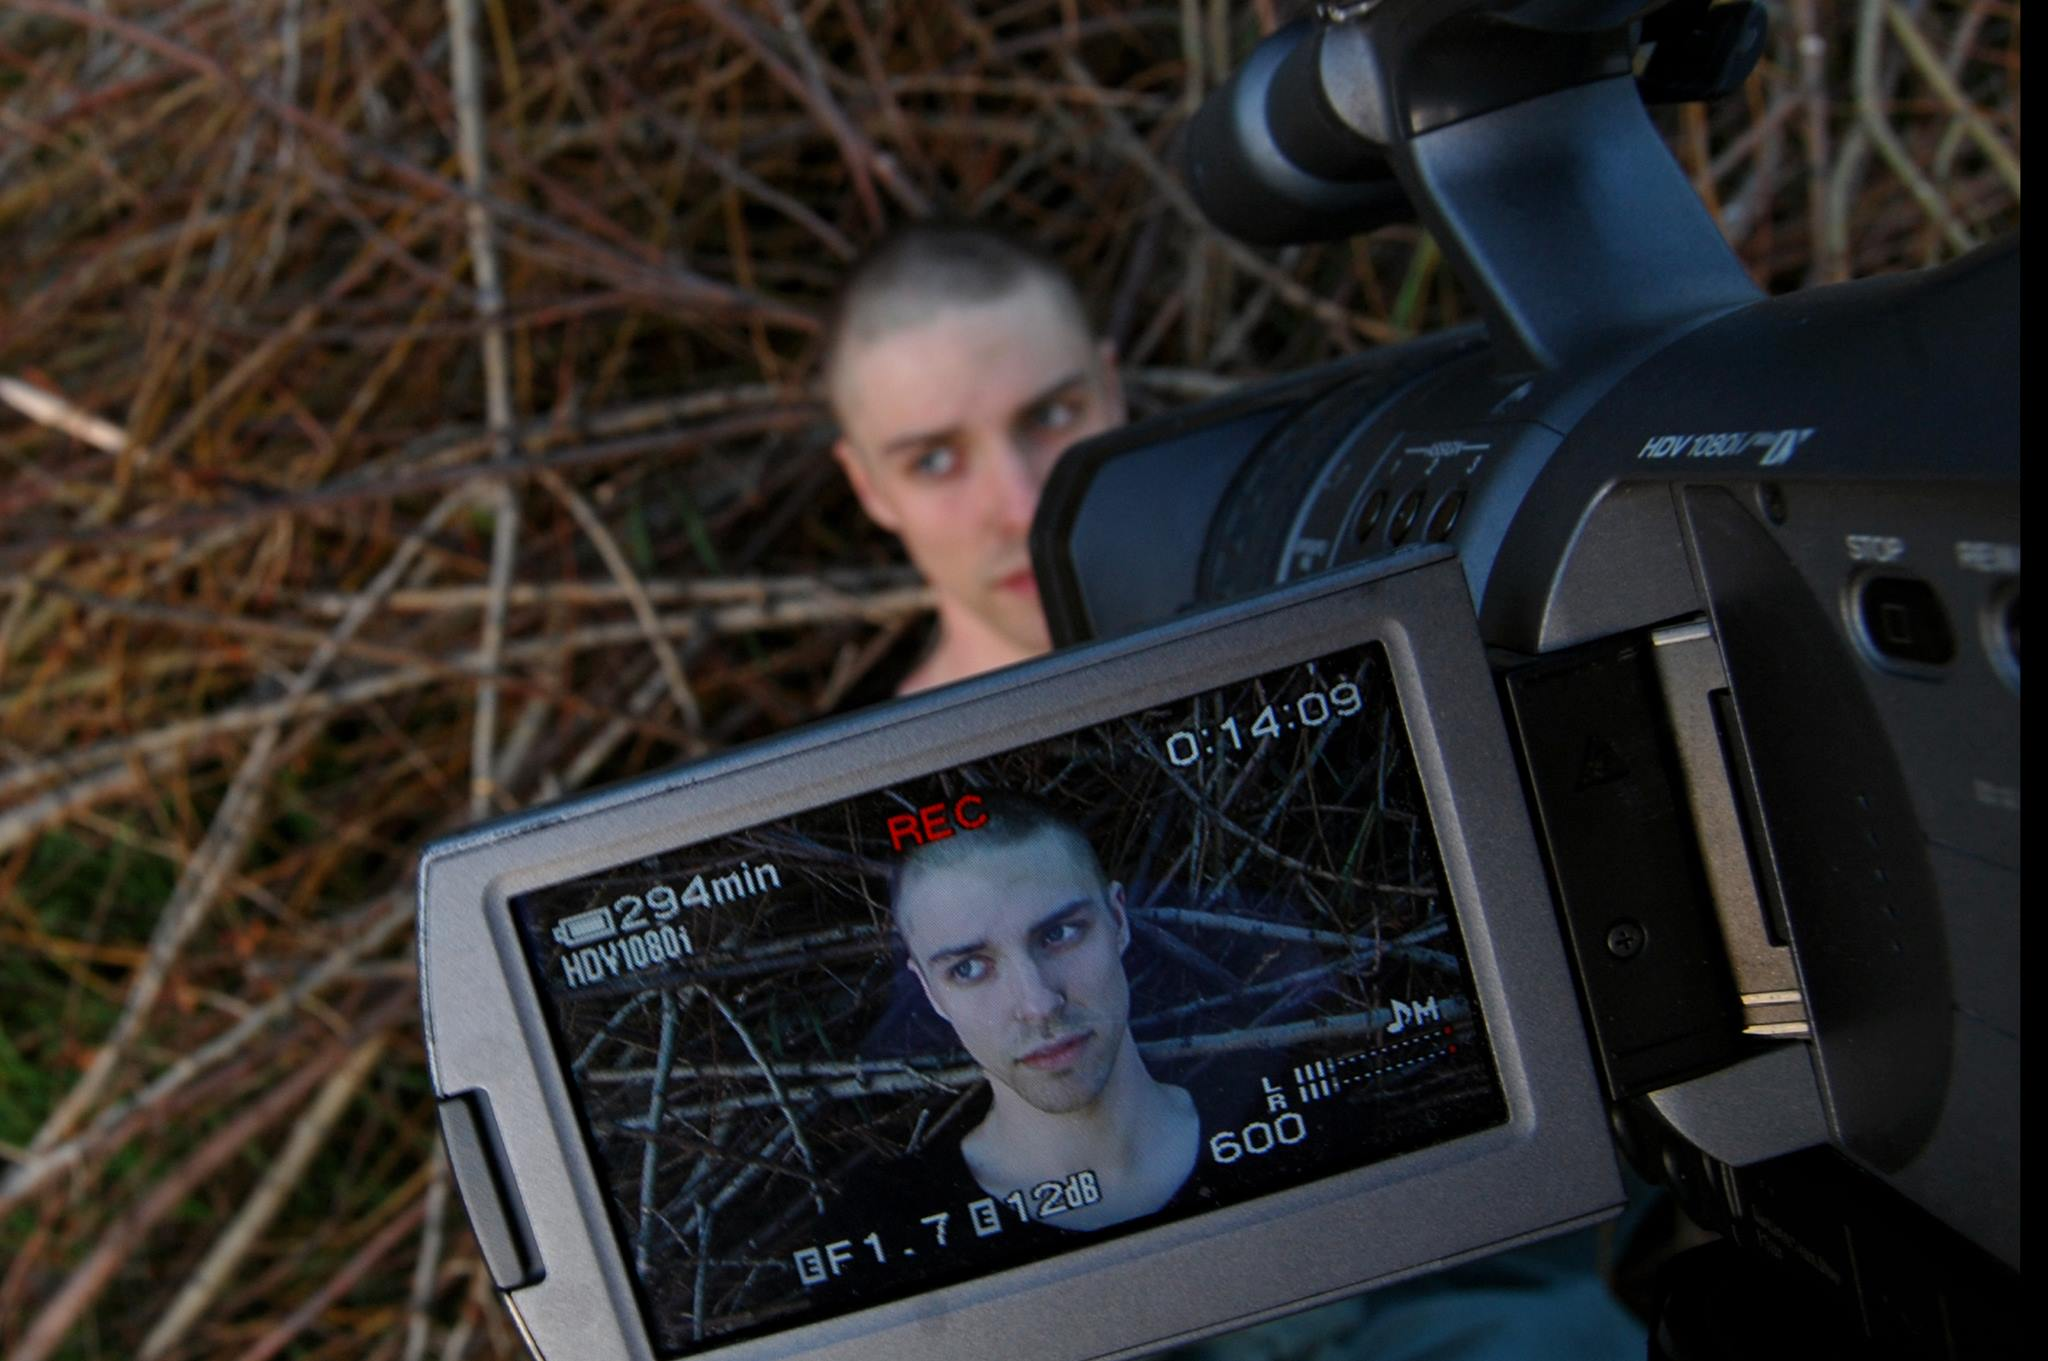 An image of the viewfinder of a digital video camera filming the face of Jonathan Fox.